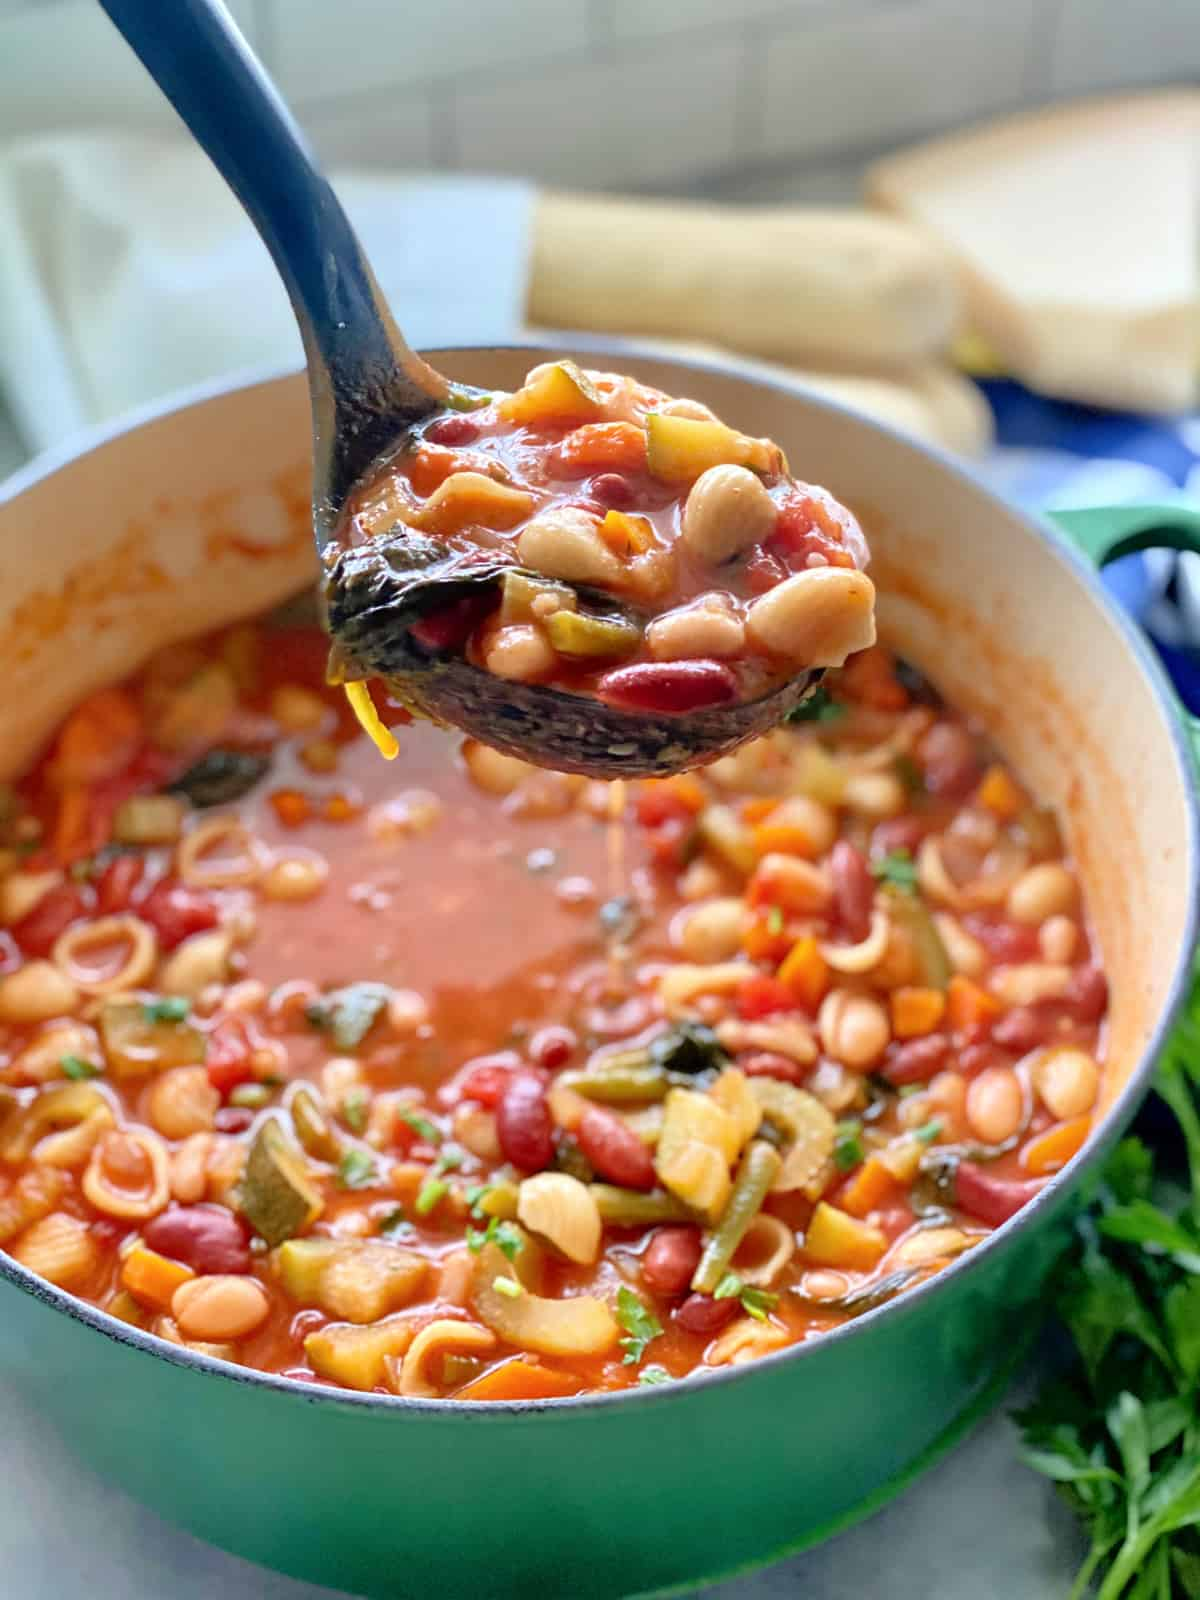 Green pot filled with minestrone soup and a black ladle filled with minestrone over the pot.